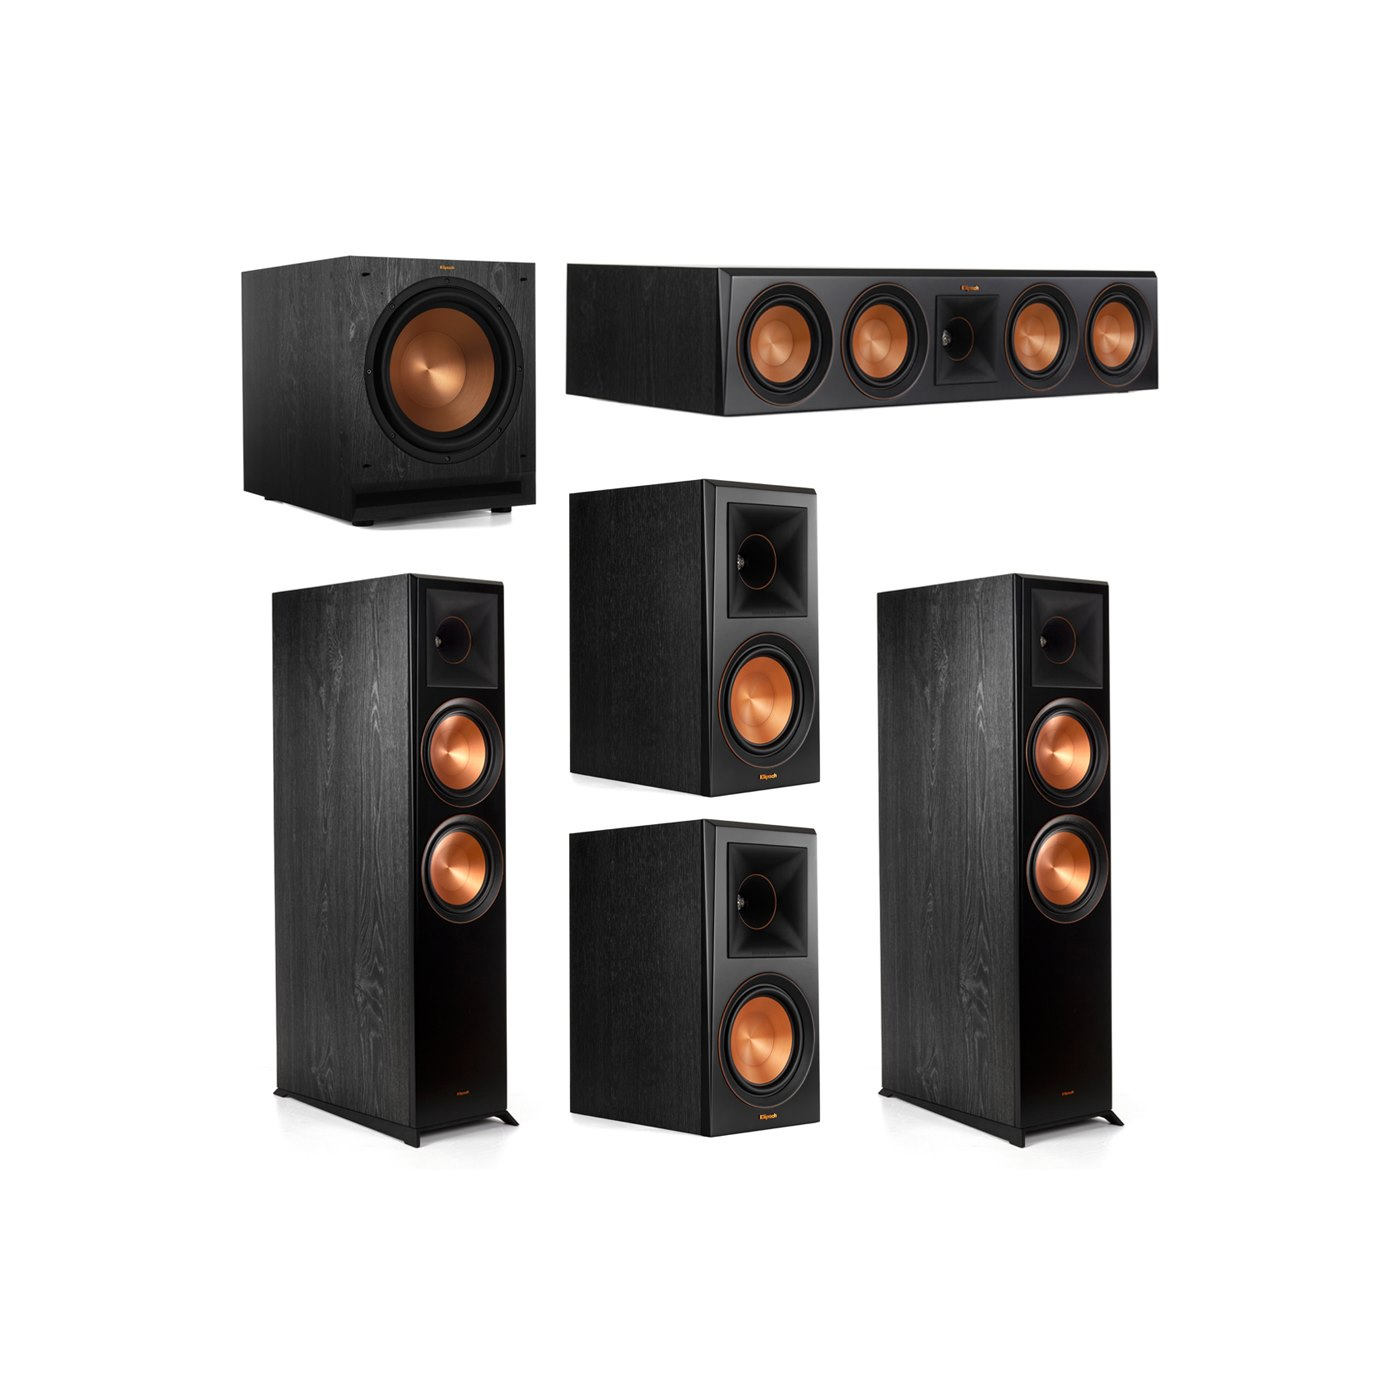 Klipsch 5.1.2 System - 2 RP-8060FA Dolby Atmos Speakers, 1 RP-504C, 2 RP-600M Speakers, 1 SPL-120